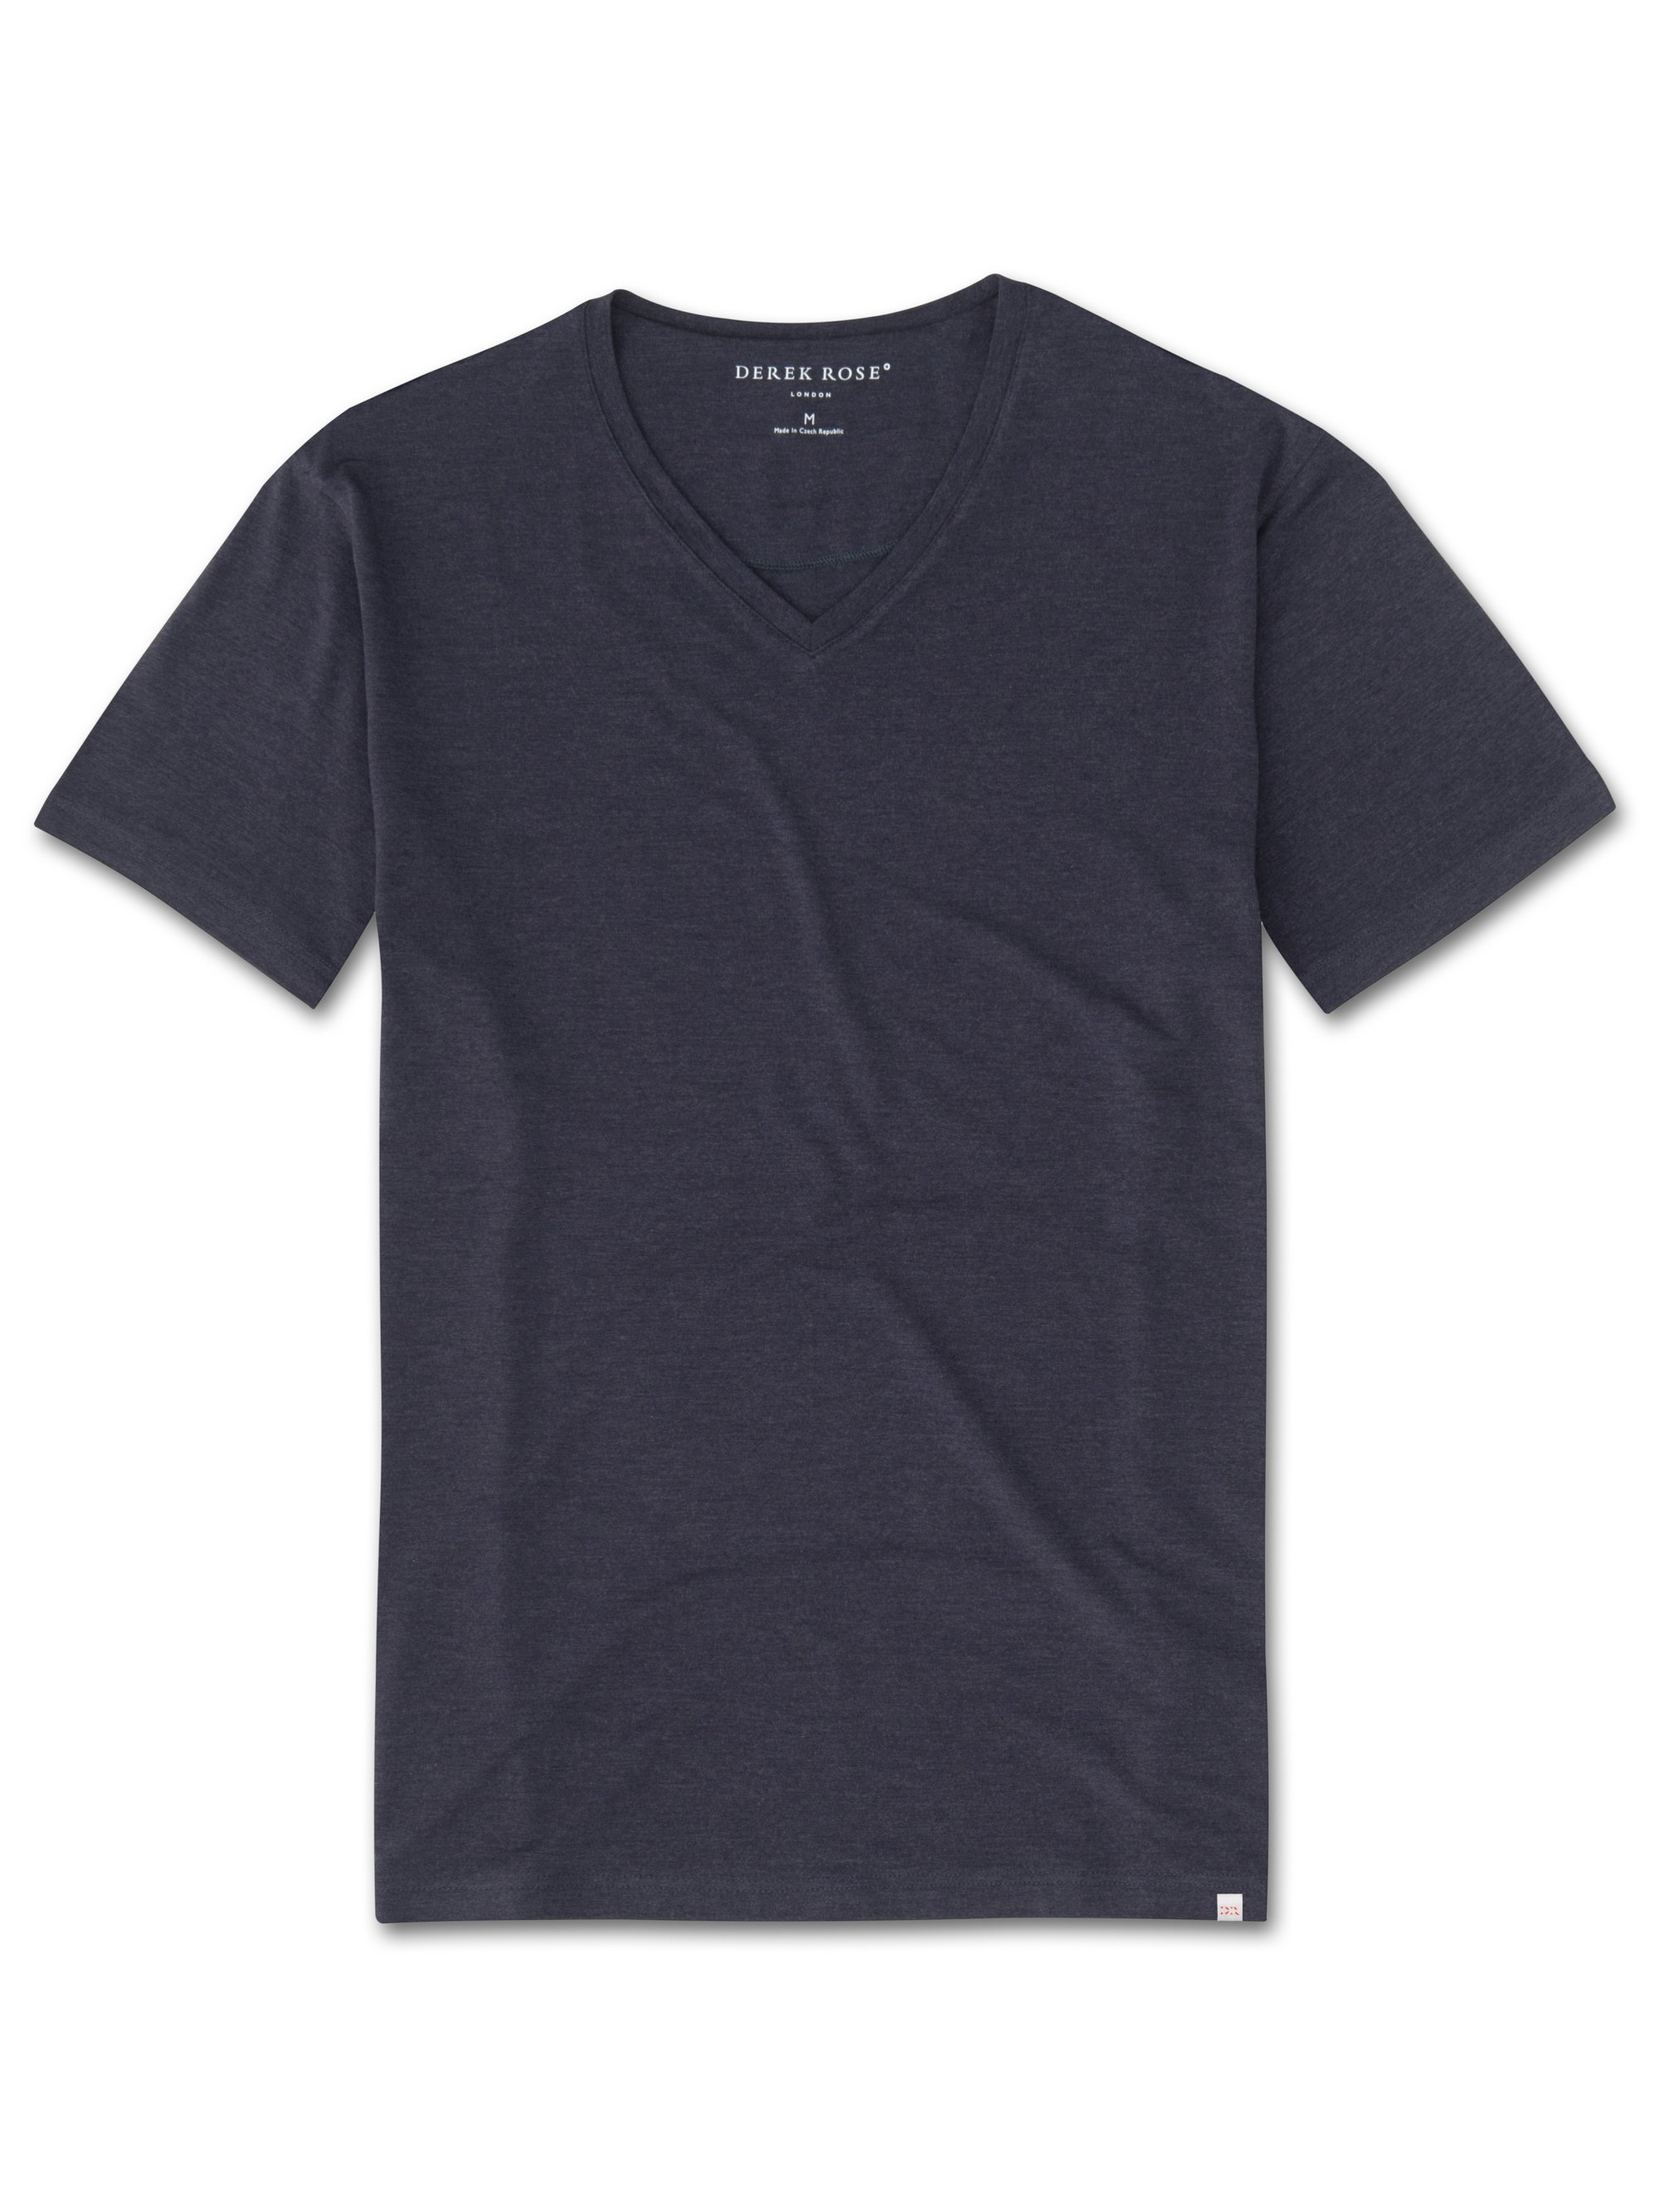 Men's Short Sleeve V-Neck T-Shirt Marlowe Micro Modal Stretch Navy